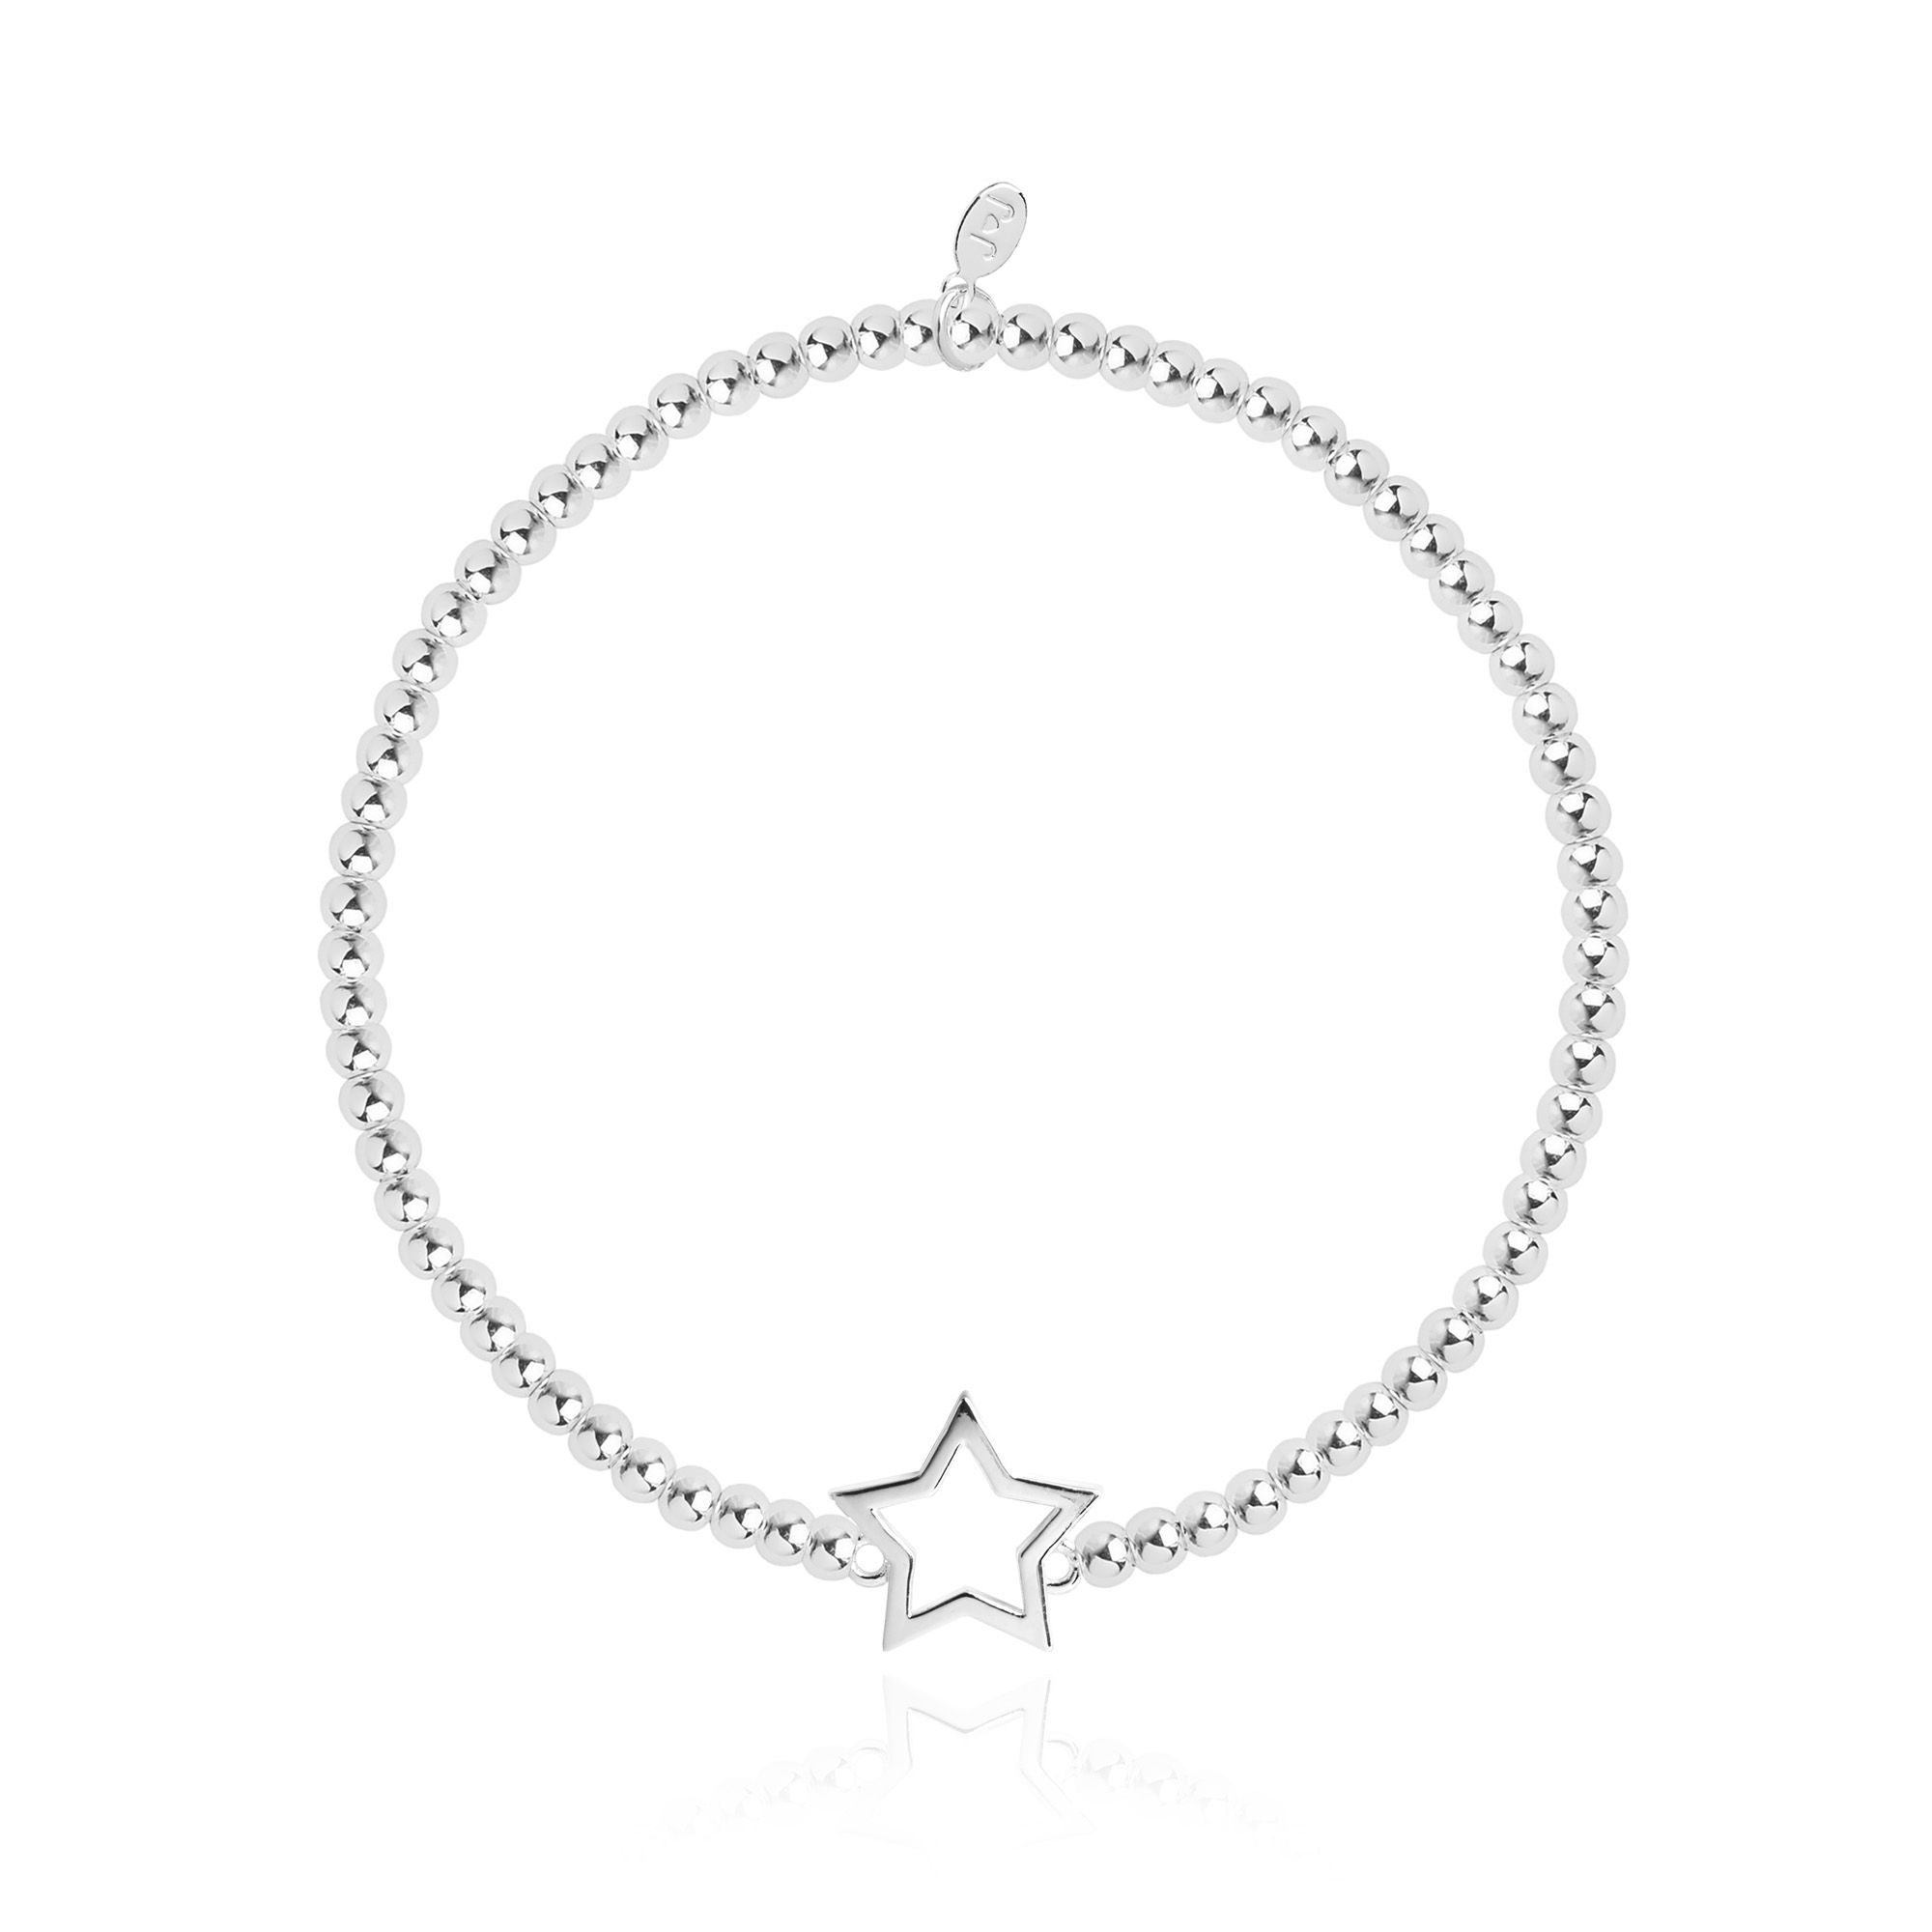 Joma Jewellery Christmas Cracker - Star Silver